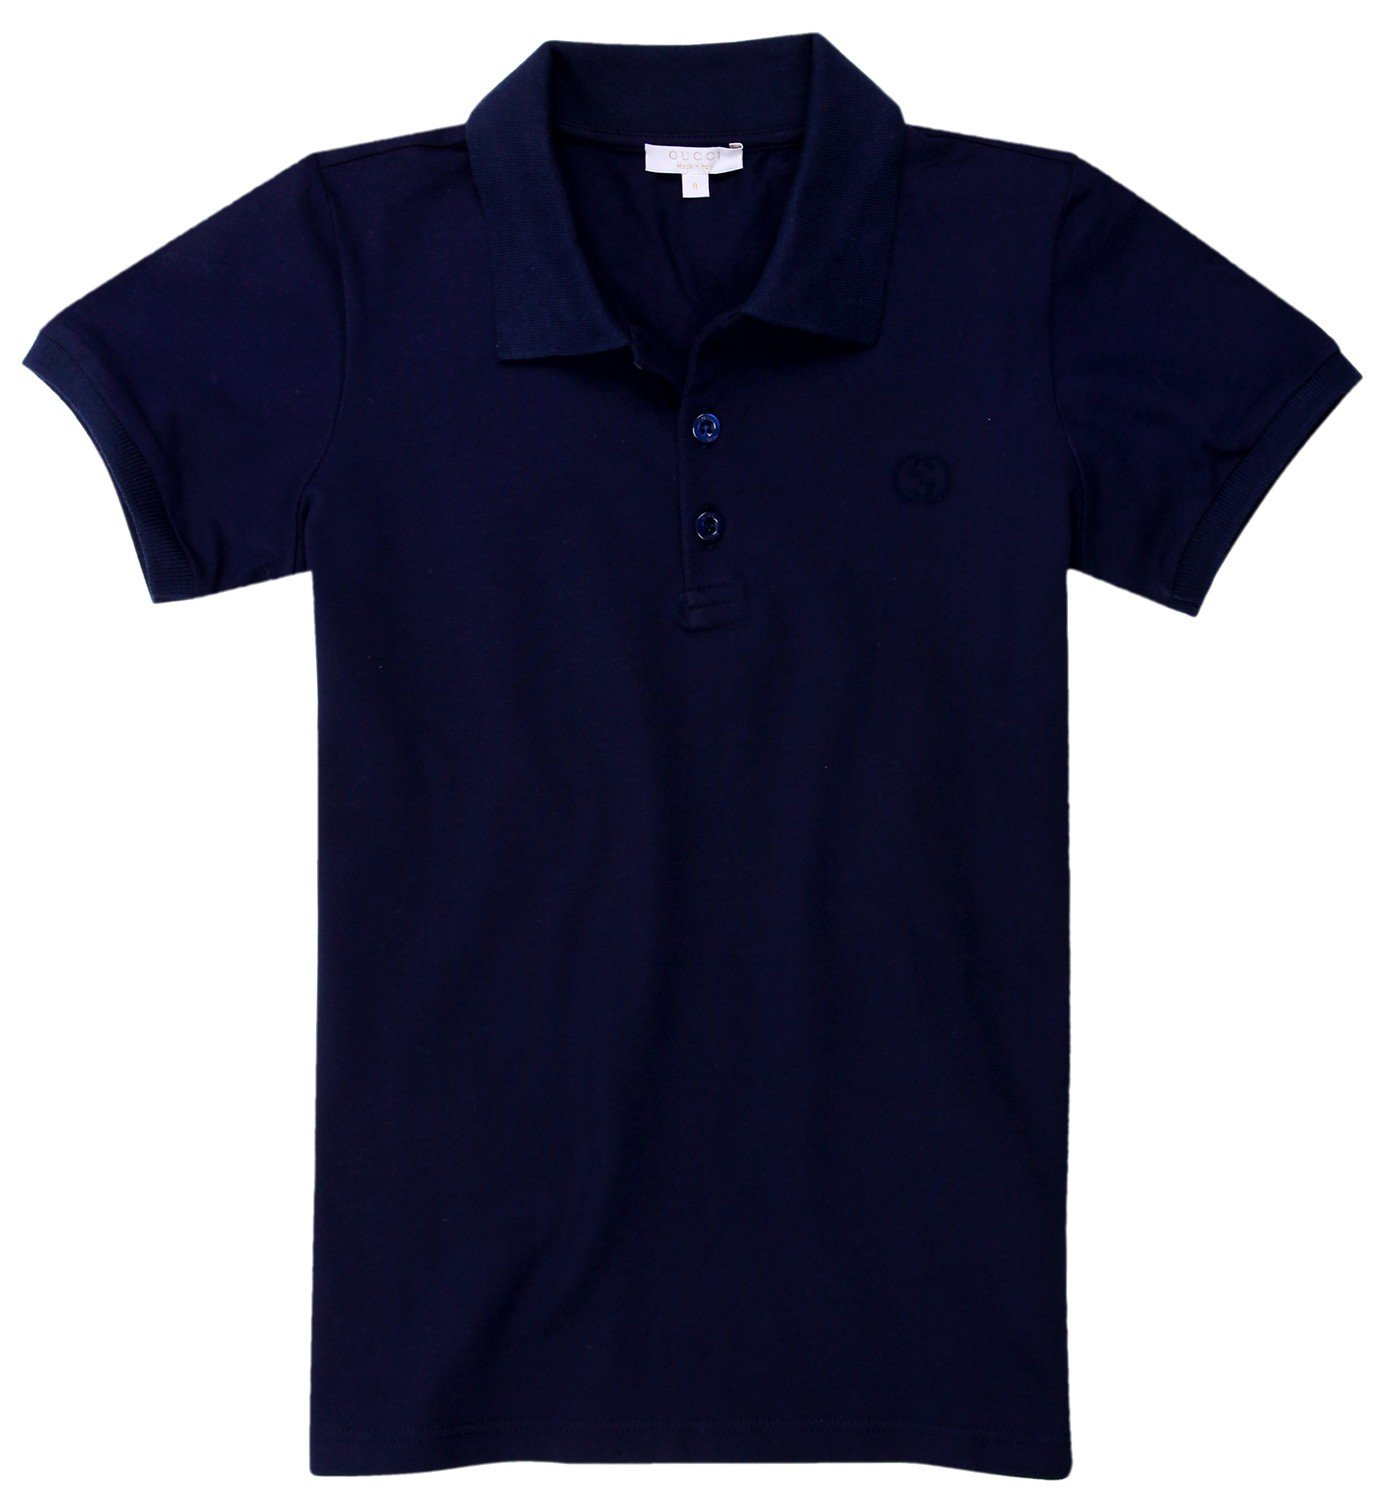 GUCCI Boys Polo shirt dark blue 311630-4057, old child size:8 years